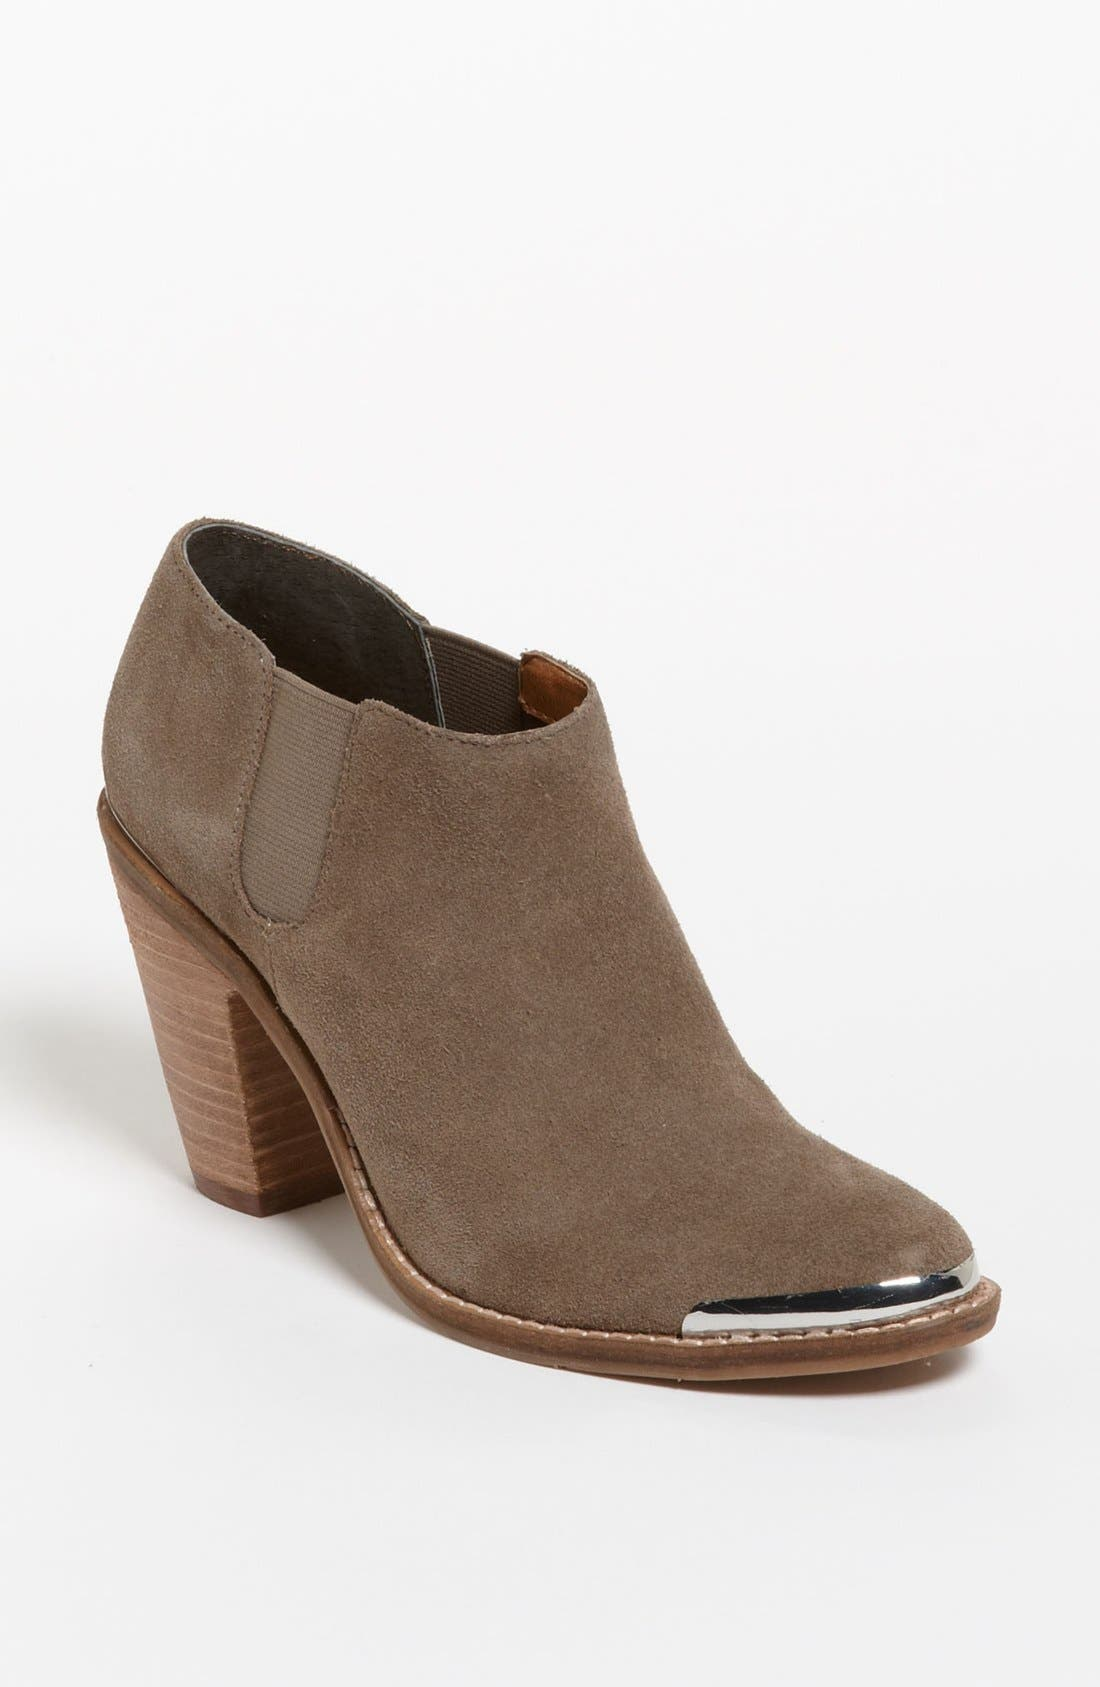 DV by Dolce Vita 'Carlin' Bootie,                             Main thumbnail 1, color,                             Taupe Suede